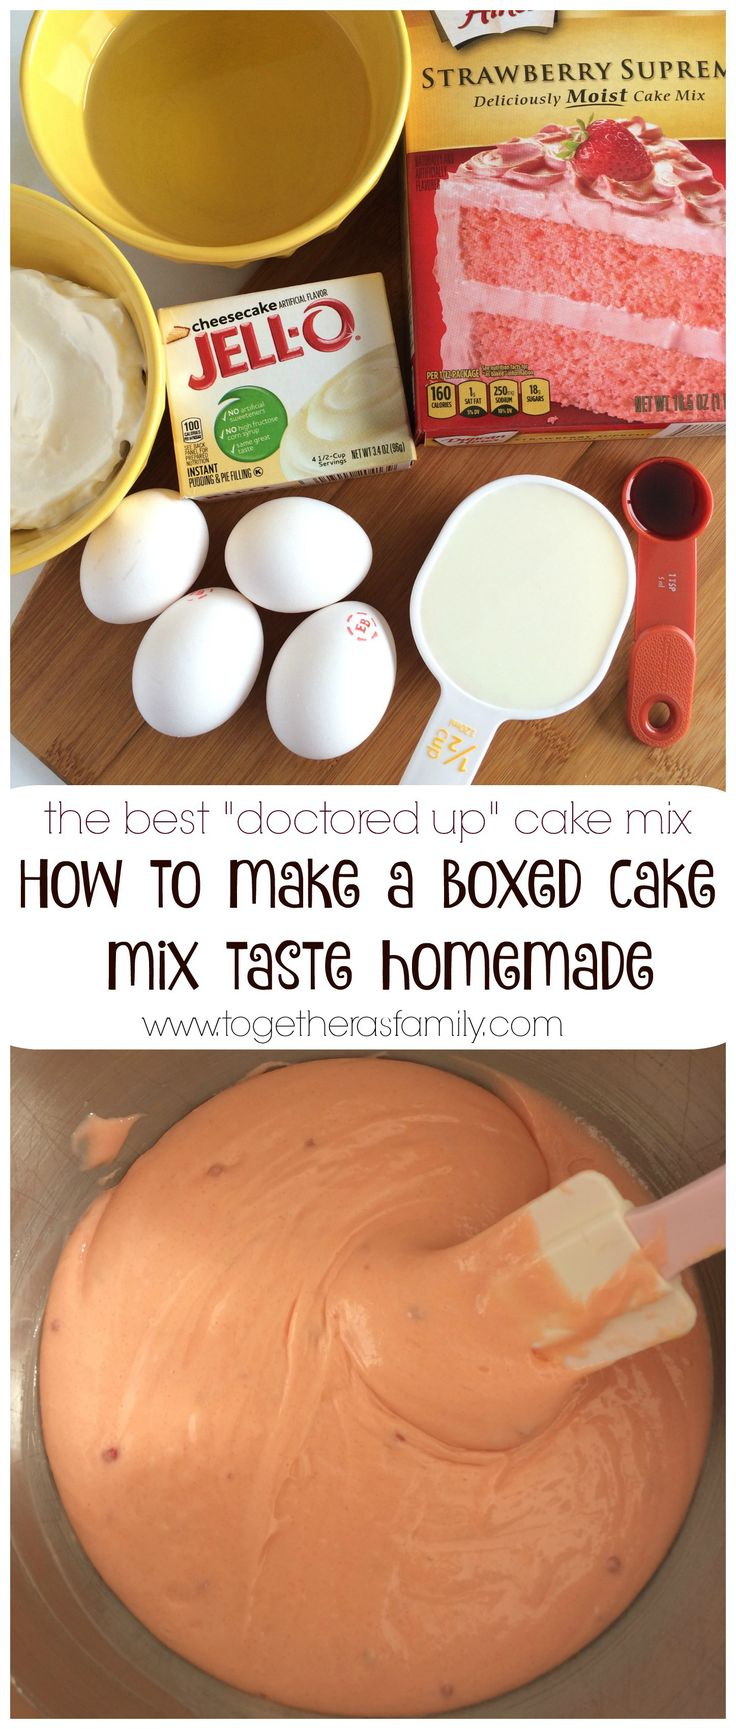 HOW TO MAKE A BOXED CAKE MIX TASTE HOMEMADE  doctored up  cake mix & Best 25+ Box cake mixes ideas on Pinterest | Making a cake Box ... Aboutintivar.Com